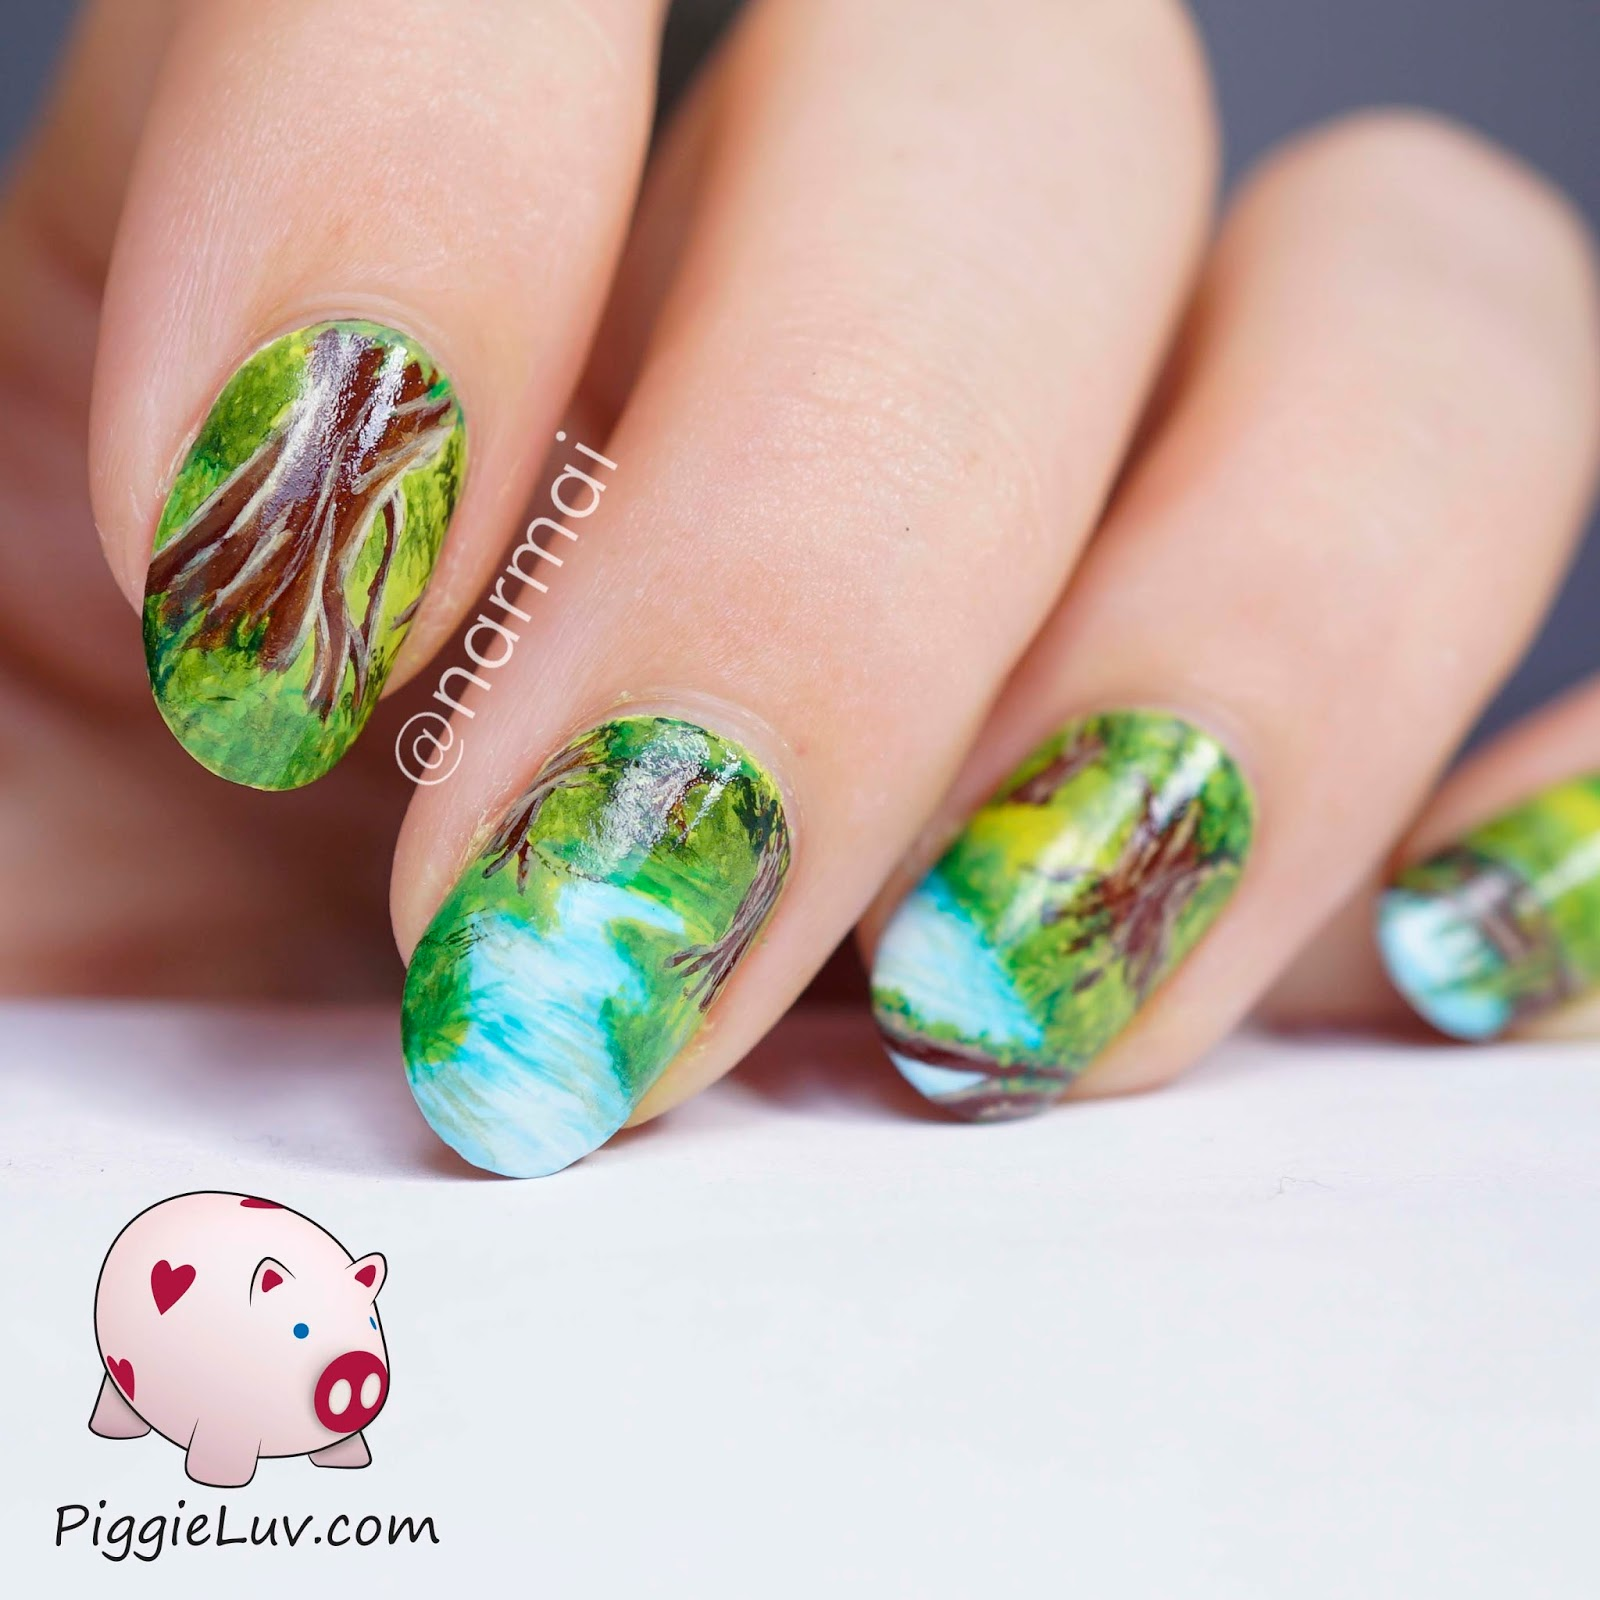 Piggieluv freehand forest sprites nail art i hadnt expected this to turn out this pretty im very pleased with it thats a rare thing for me i always see the mistakes in everything i make prinsesfo Gallery